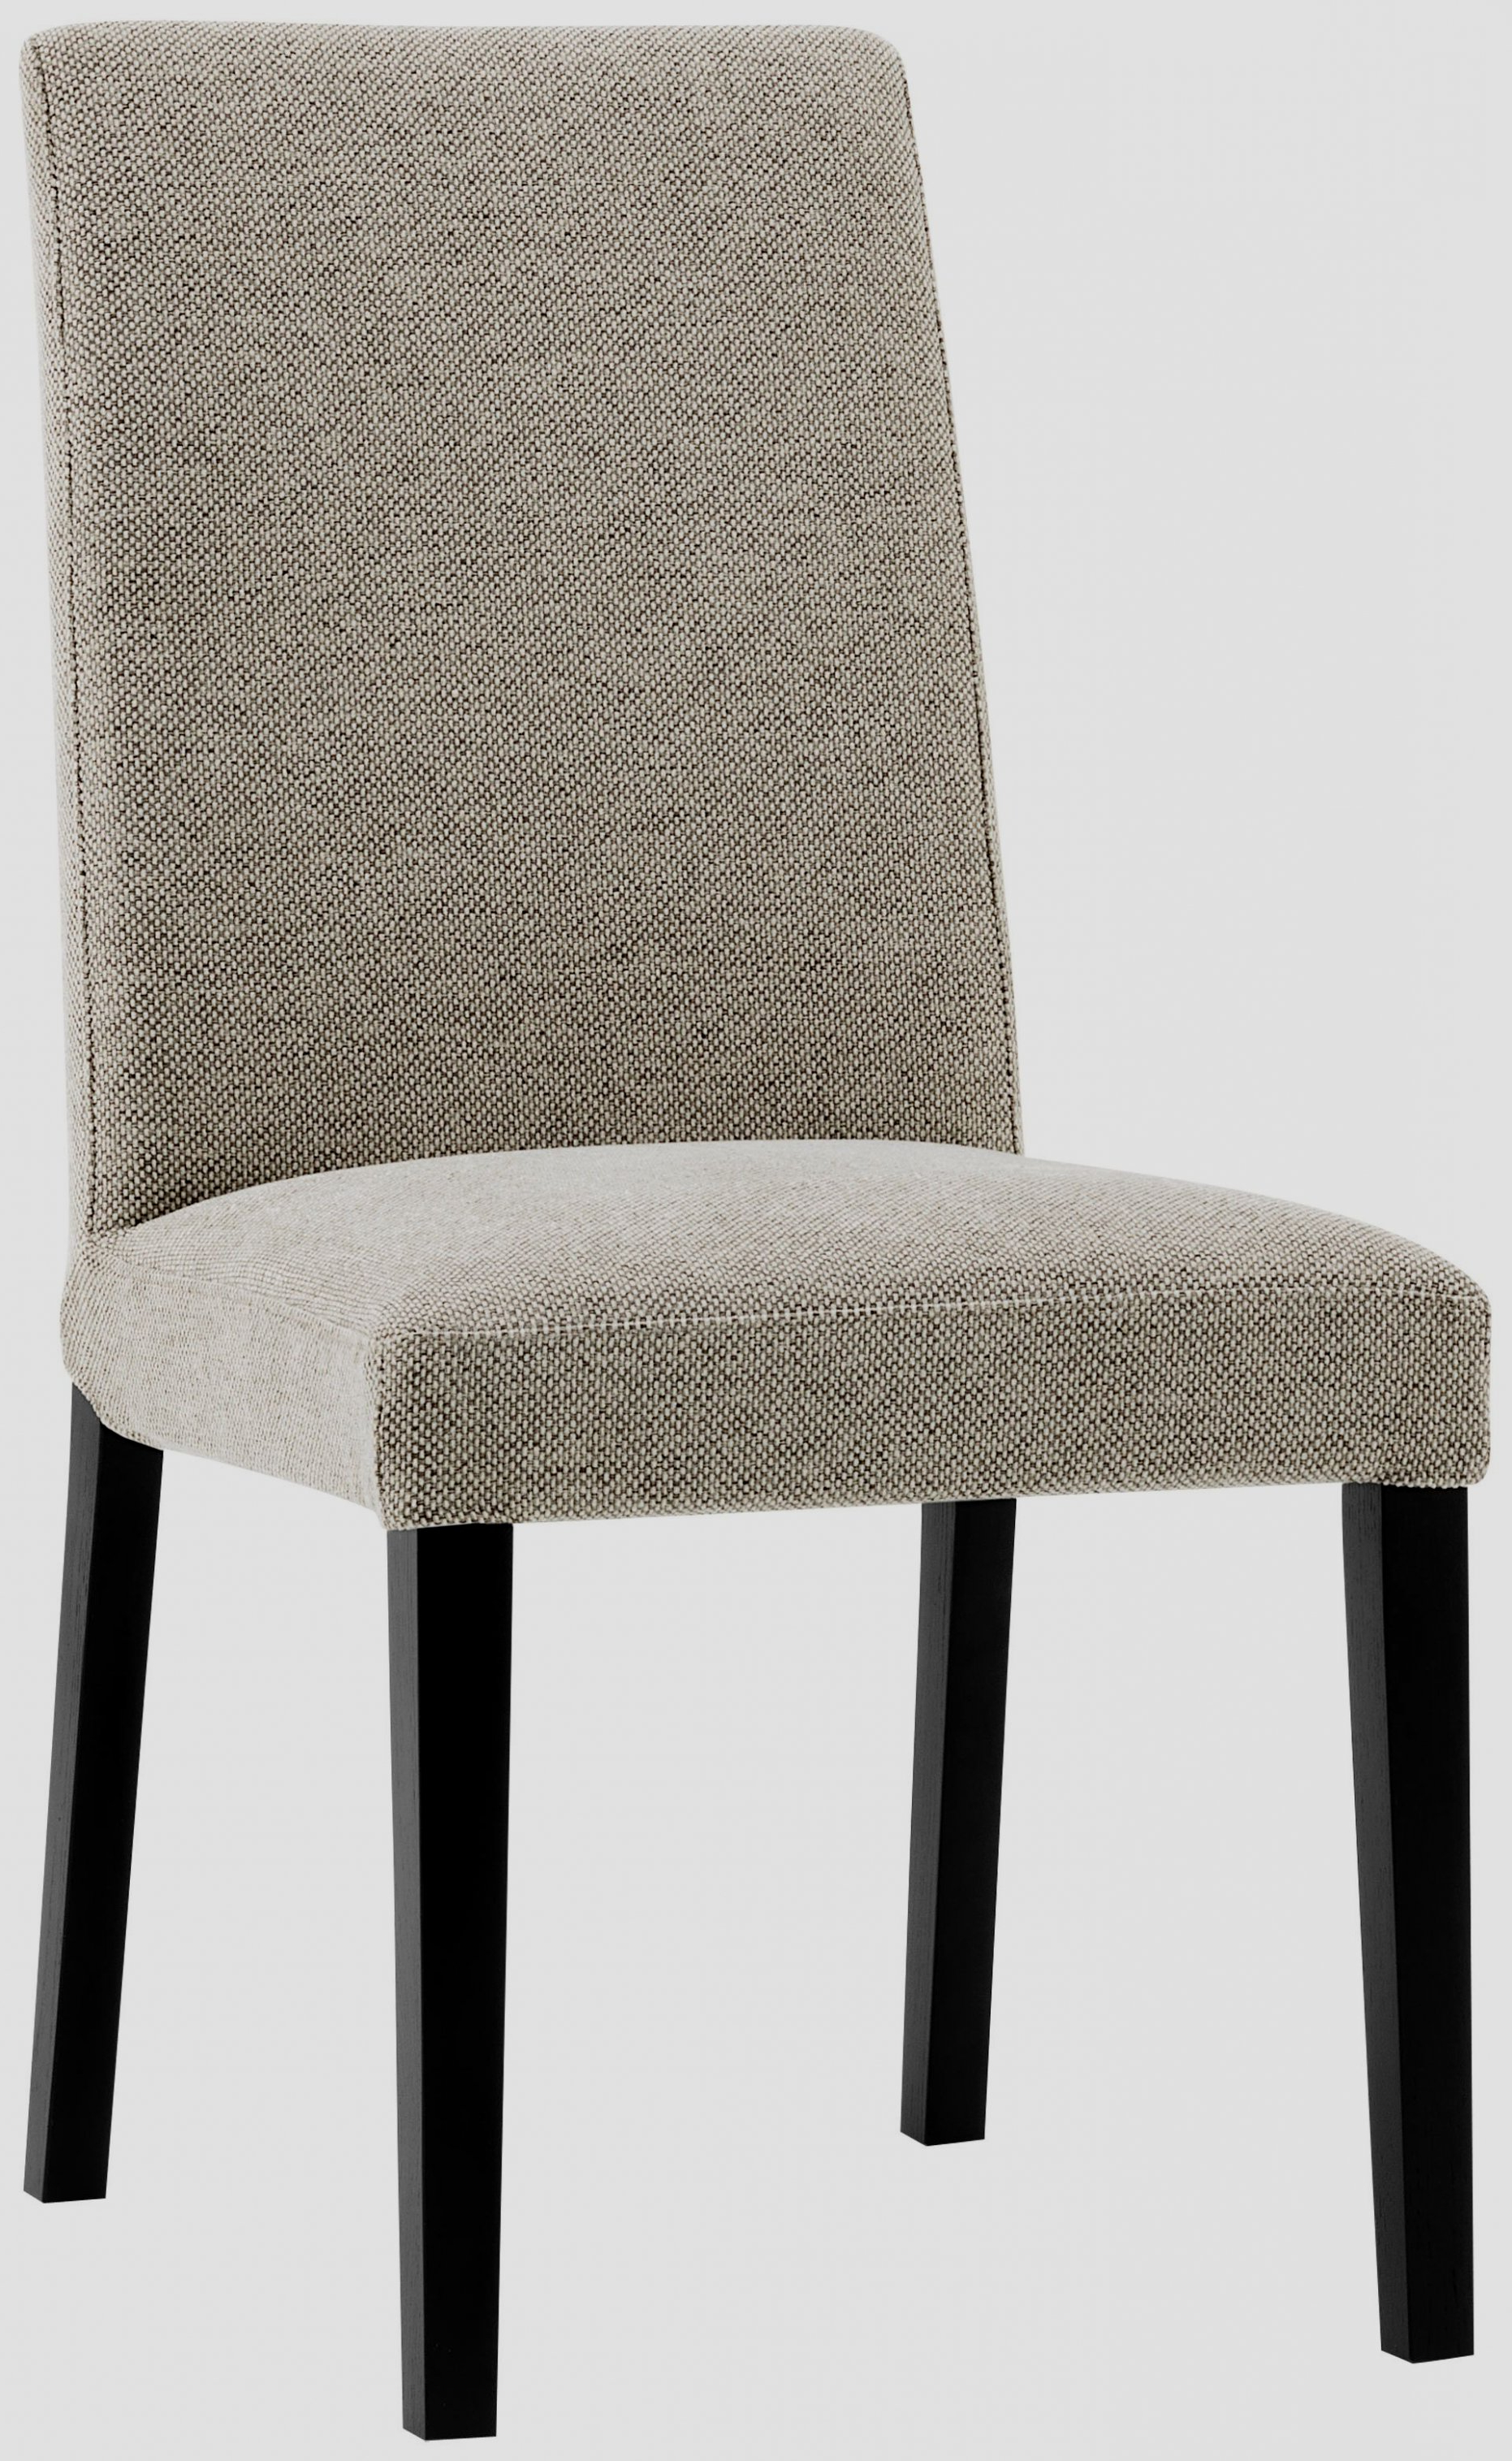 Silla nordica Blanca E6d5 Silla nordica Blanca Bello Modern Dining Chairs Contemporary Dining